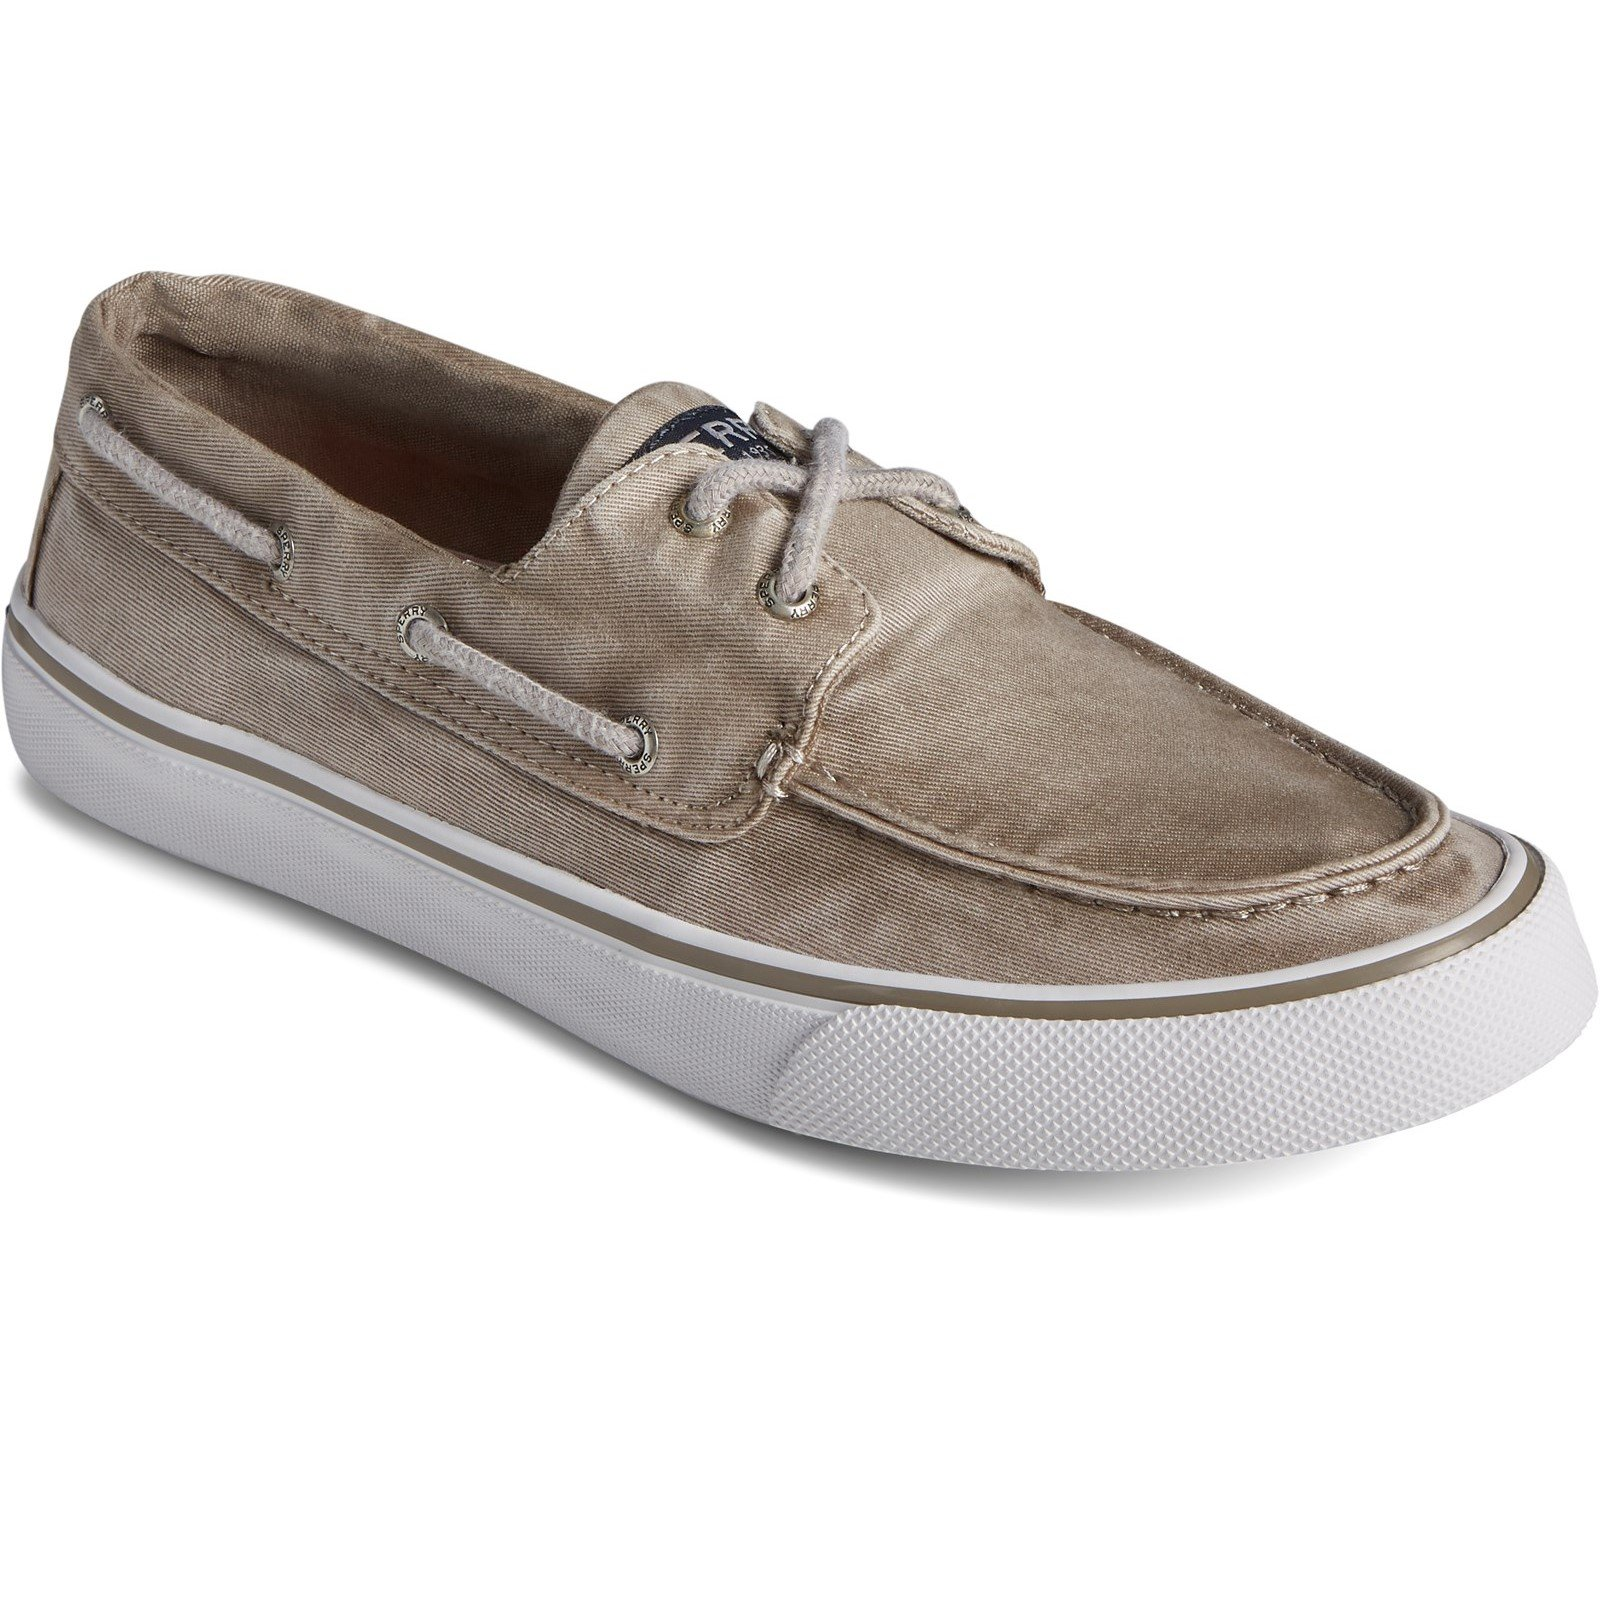 Sperry Men's Bahama II Boat Shoe Various Colours 32923 - Taupe 12